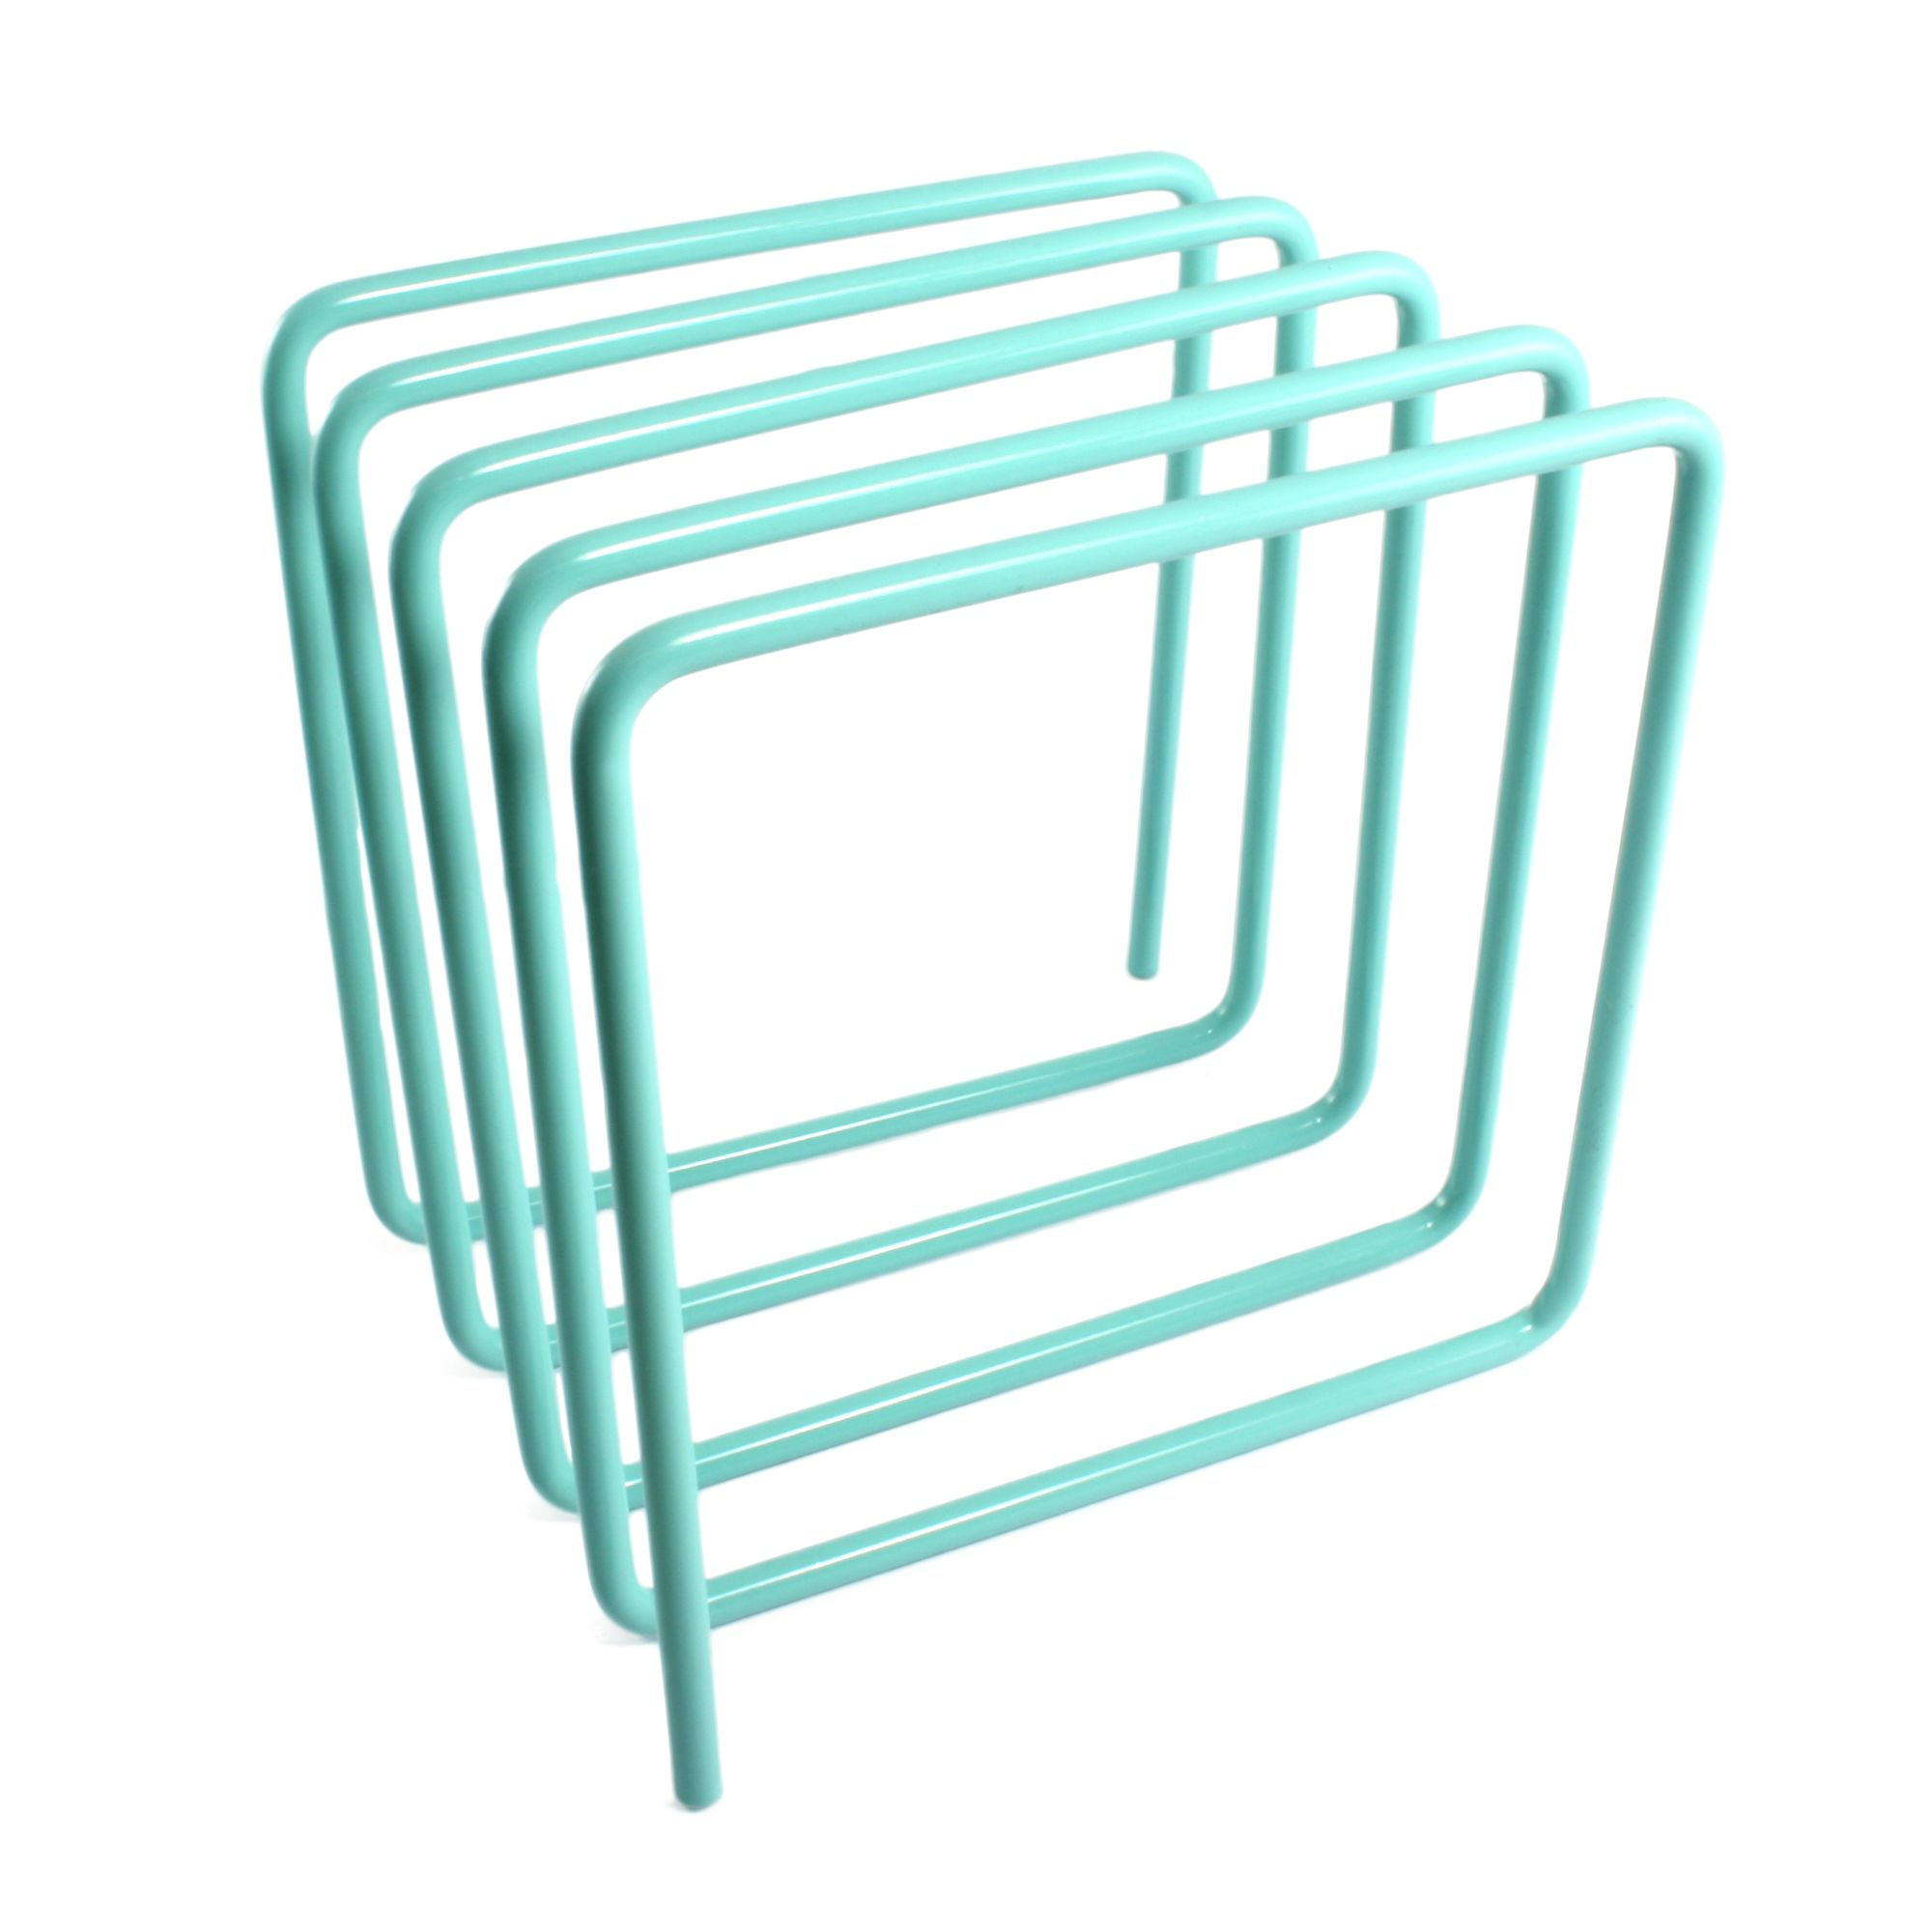 Wire Magazine Rack Desk Organiser Vinyl Record Holder With Images Living Room Accessories Decor Magazine Rack Magazine Holders